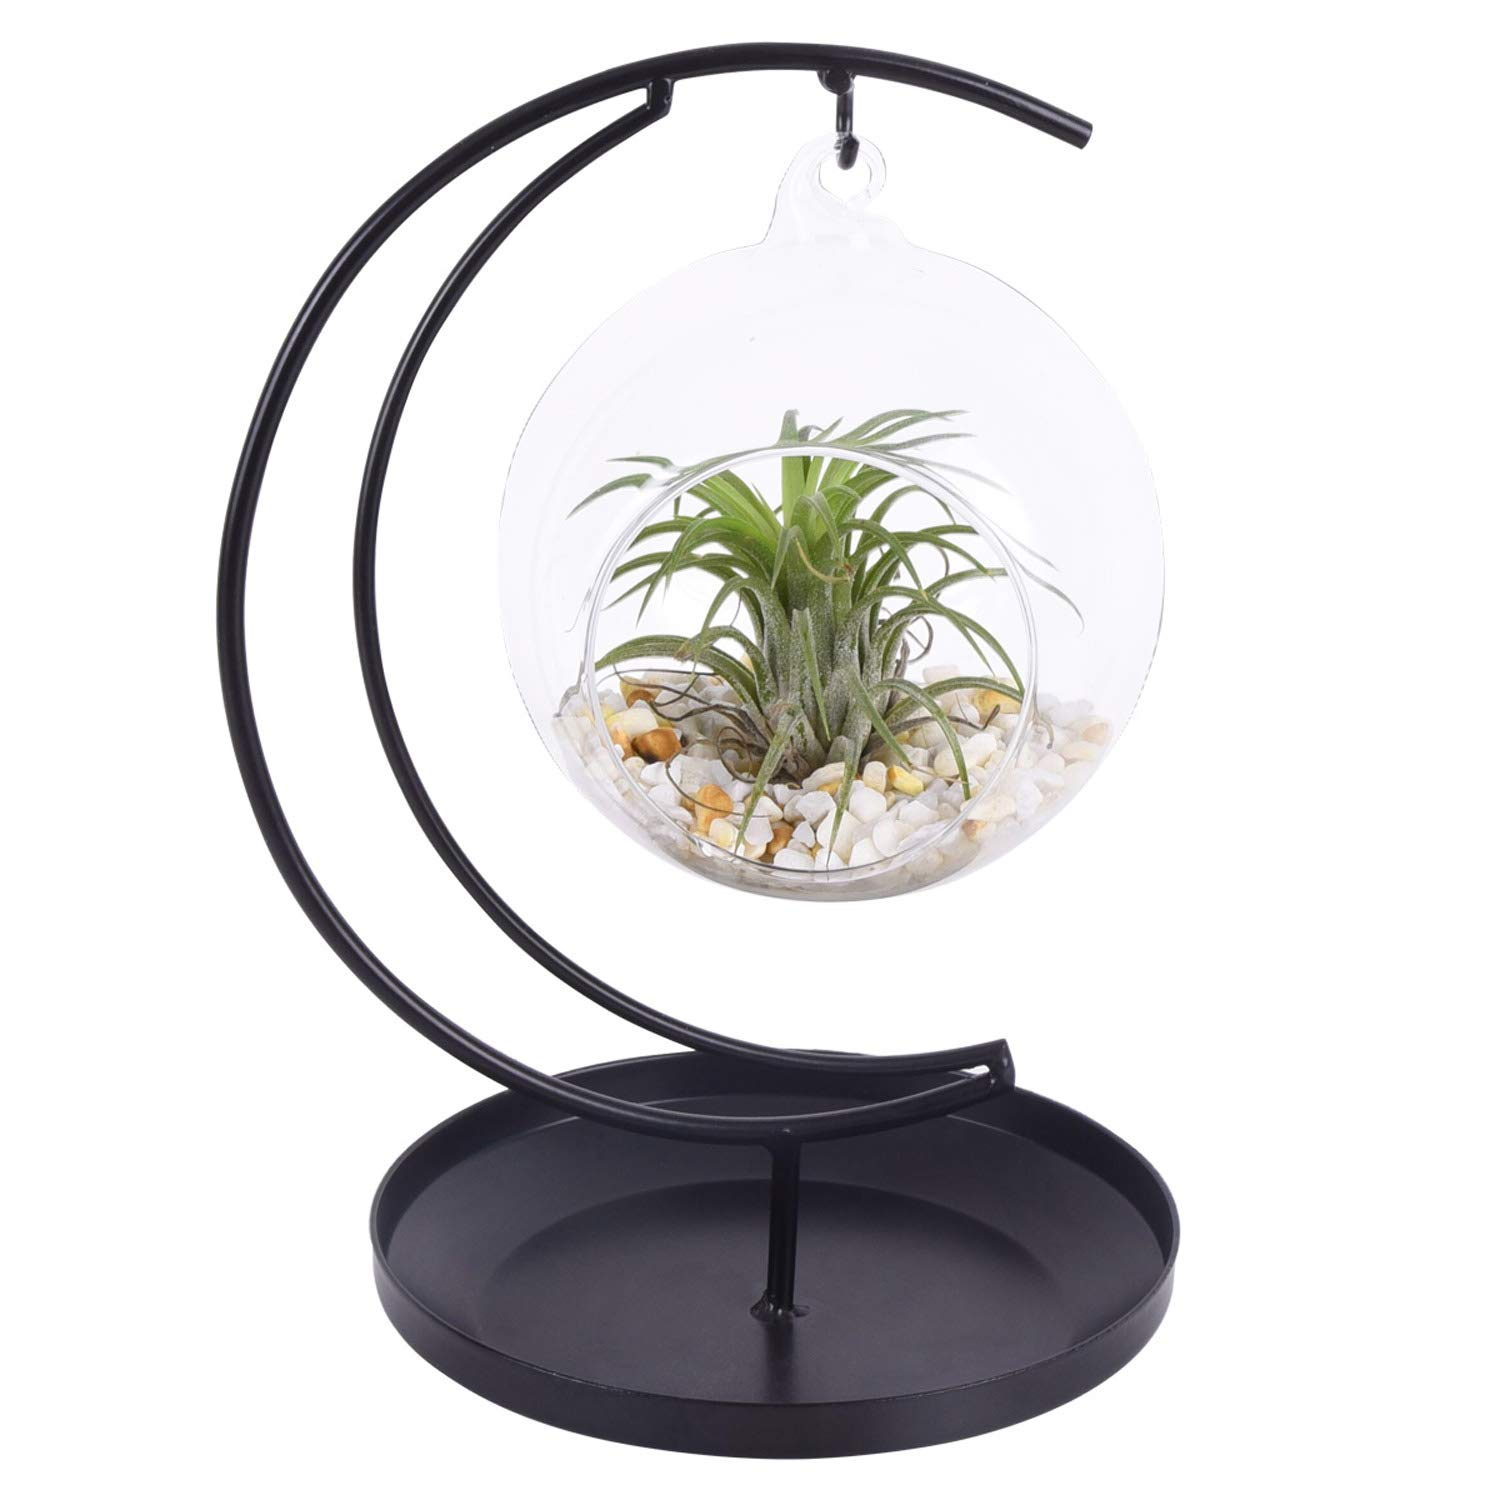 AUTOARK Glass Vase Plant Terrarium with Black Metal Tray Stand,Ornament Display Stand,Office Desktop Potted Stand,Home & Office Decor Accent,Moon Shape Design,1 Globe,APT-014 by AUTOARK